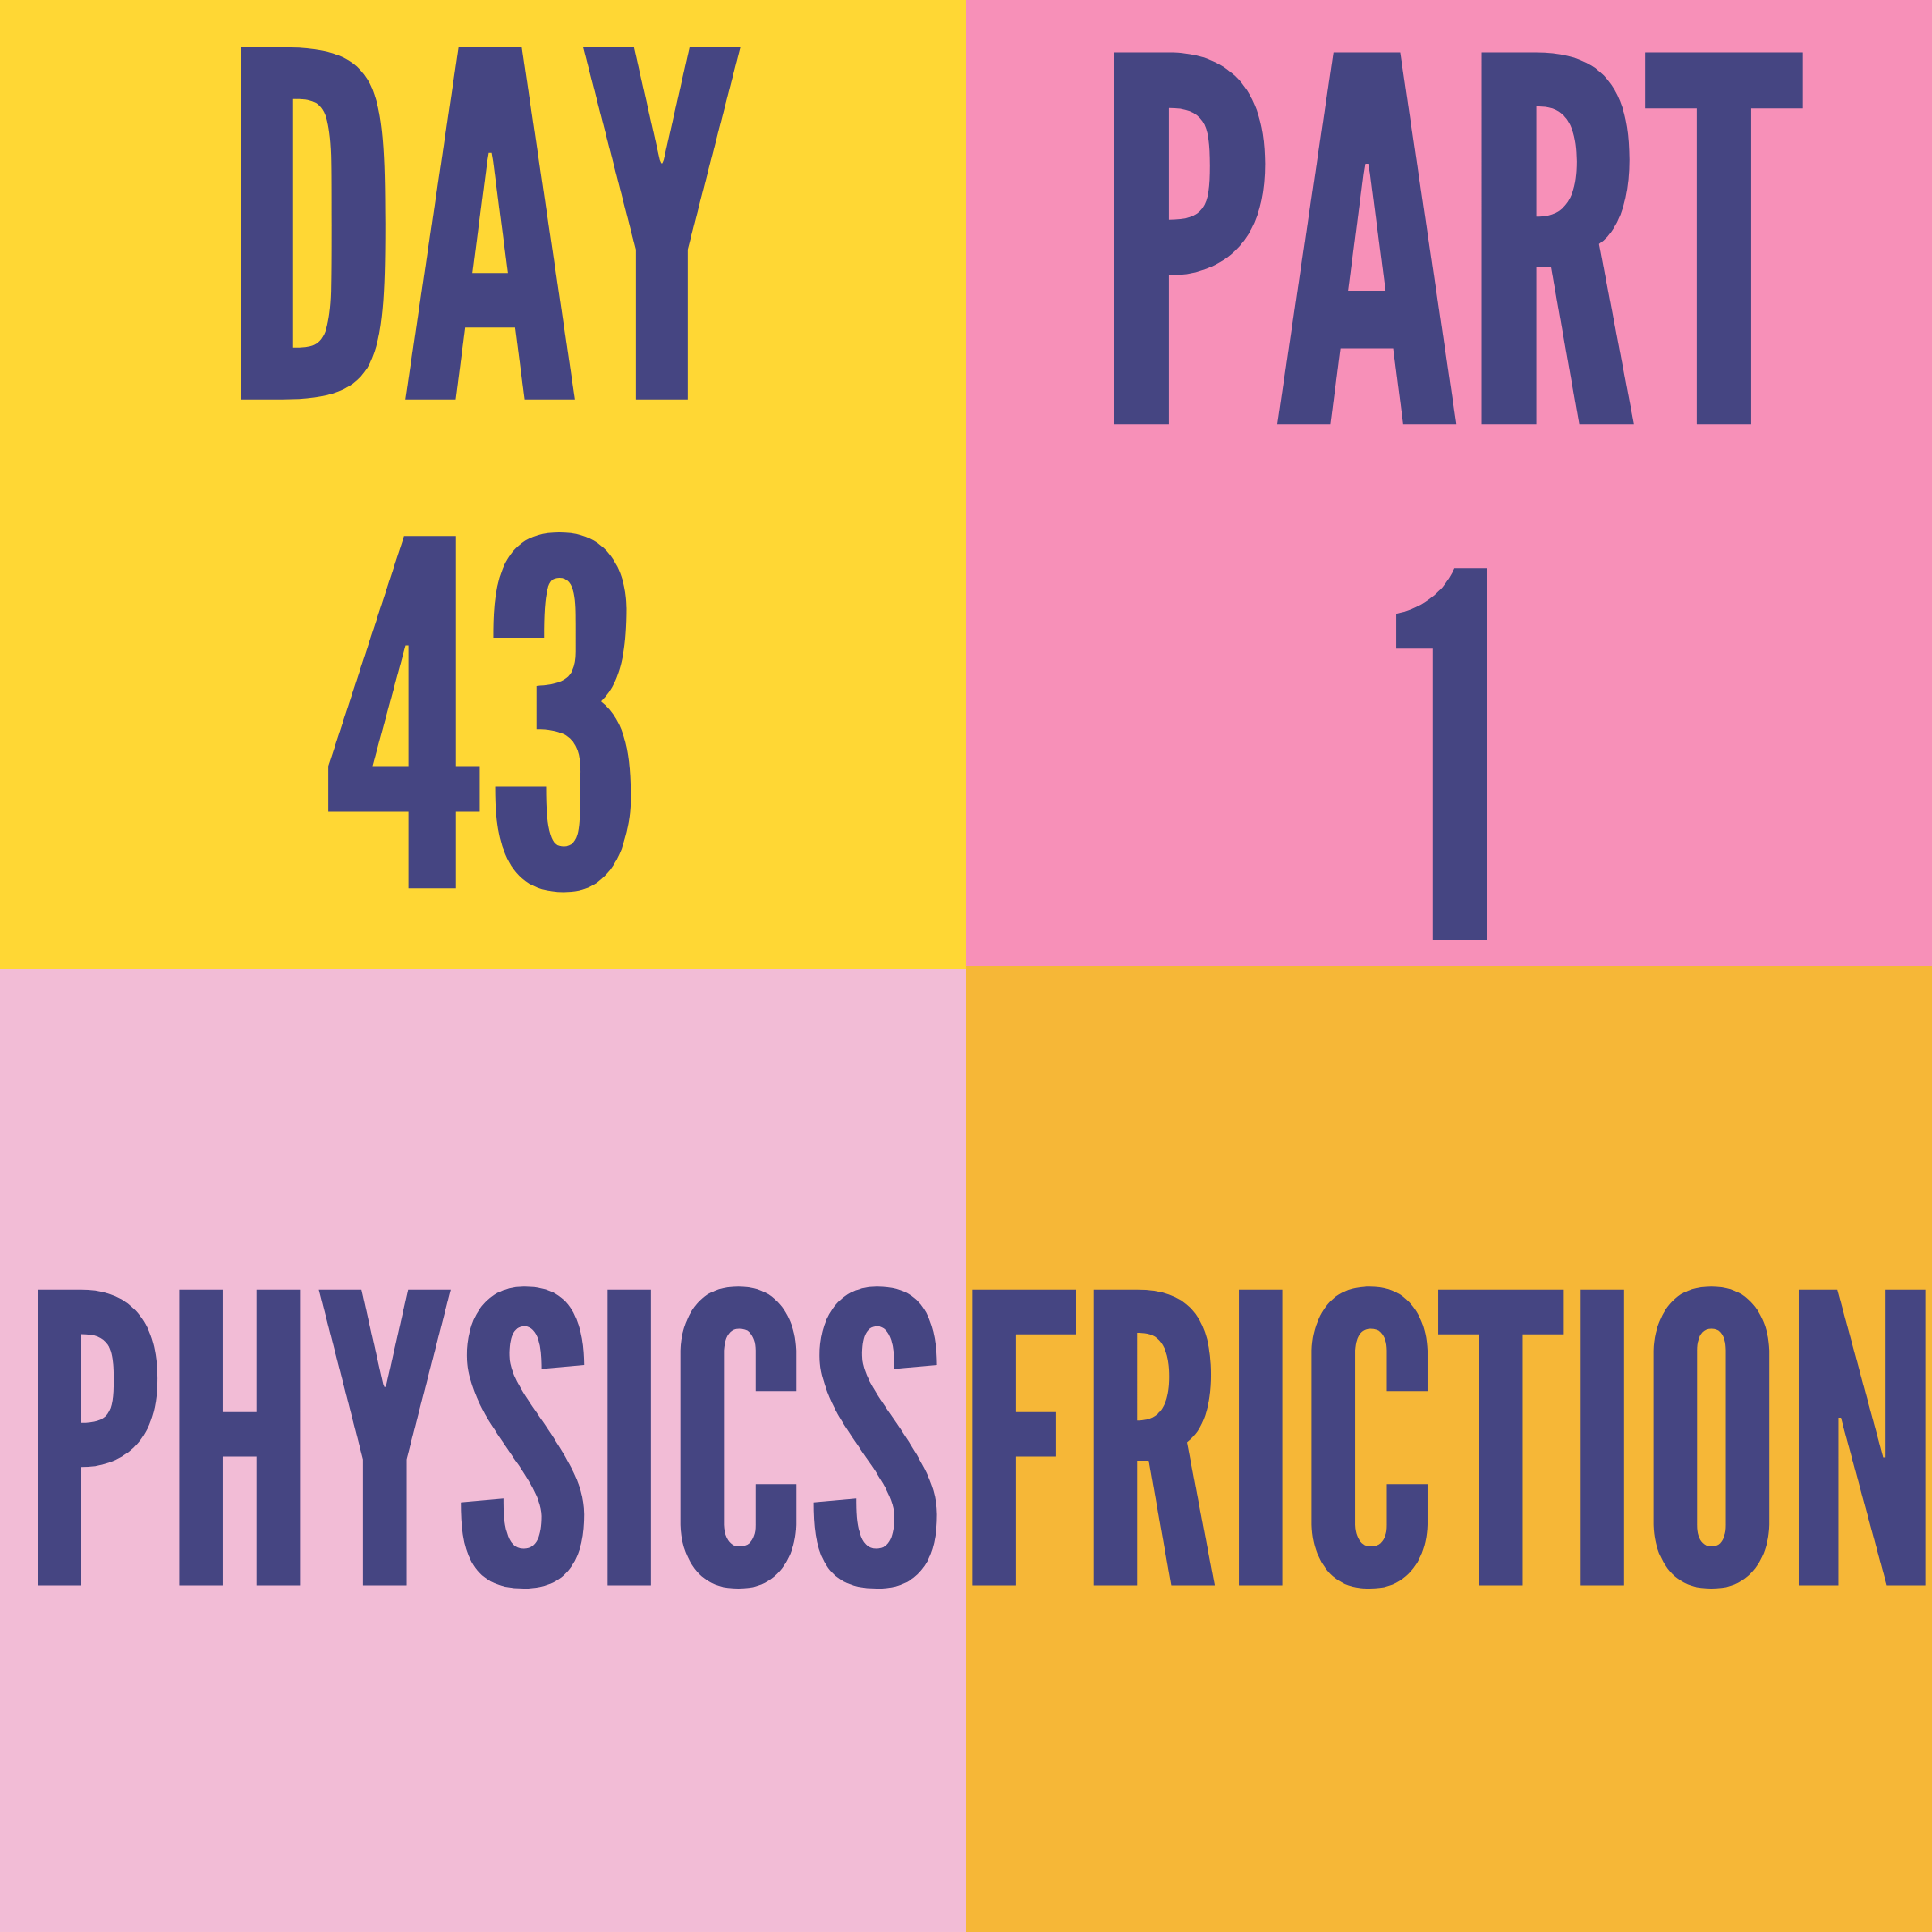 DAY-43 PART-1 FRICTION